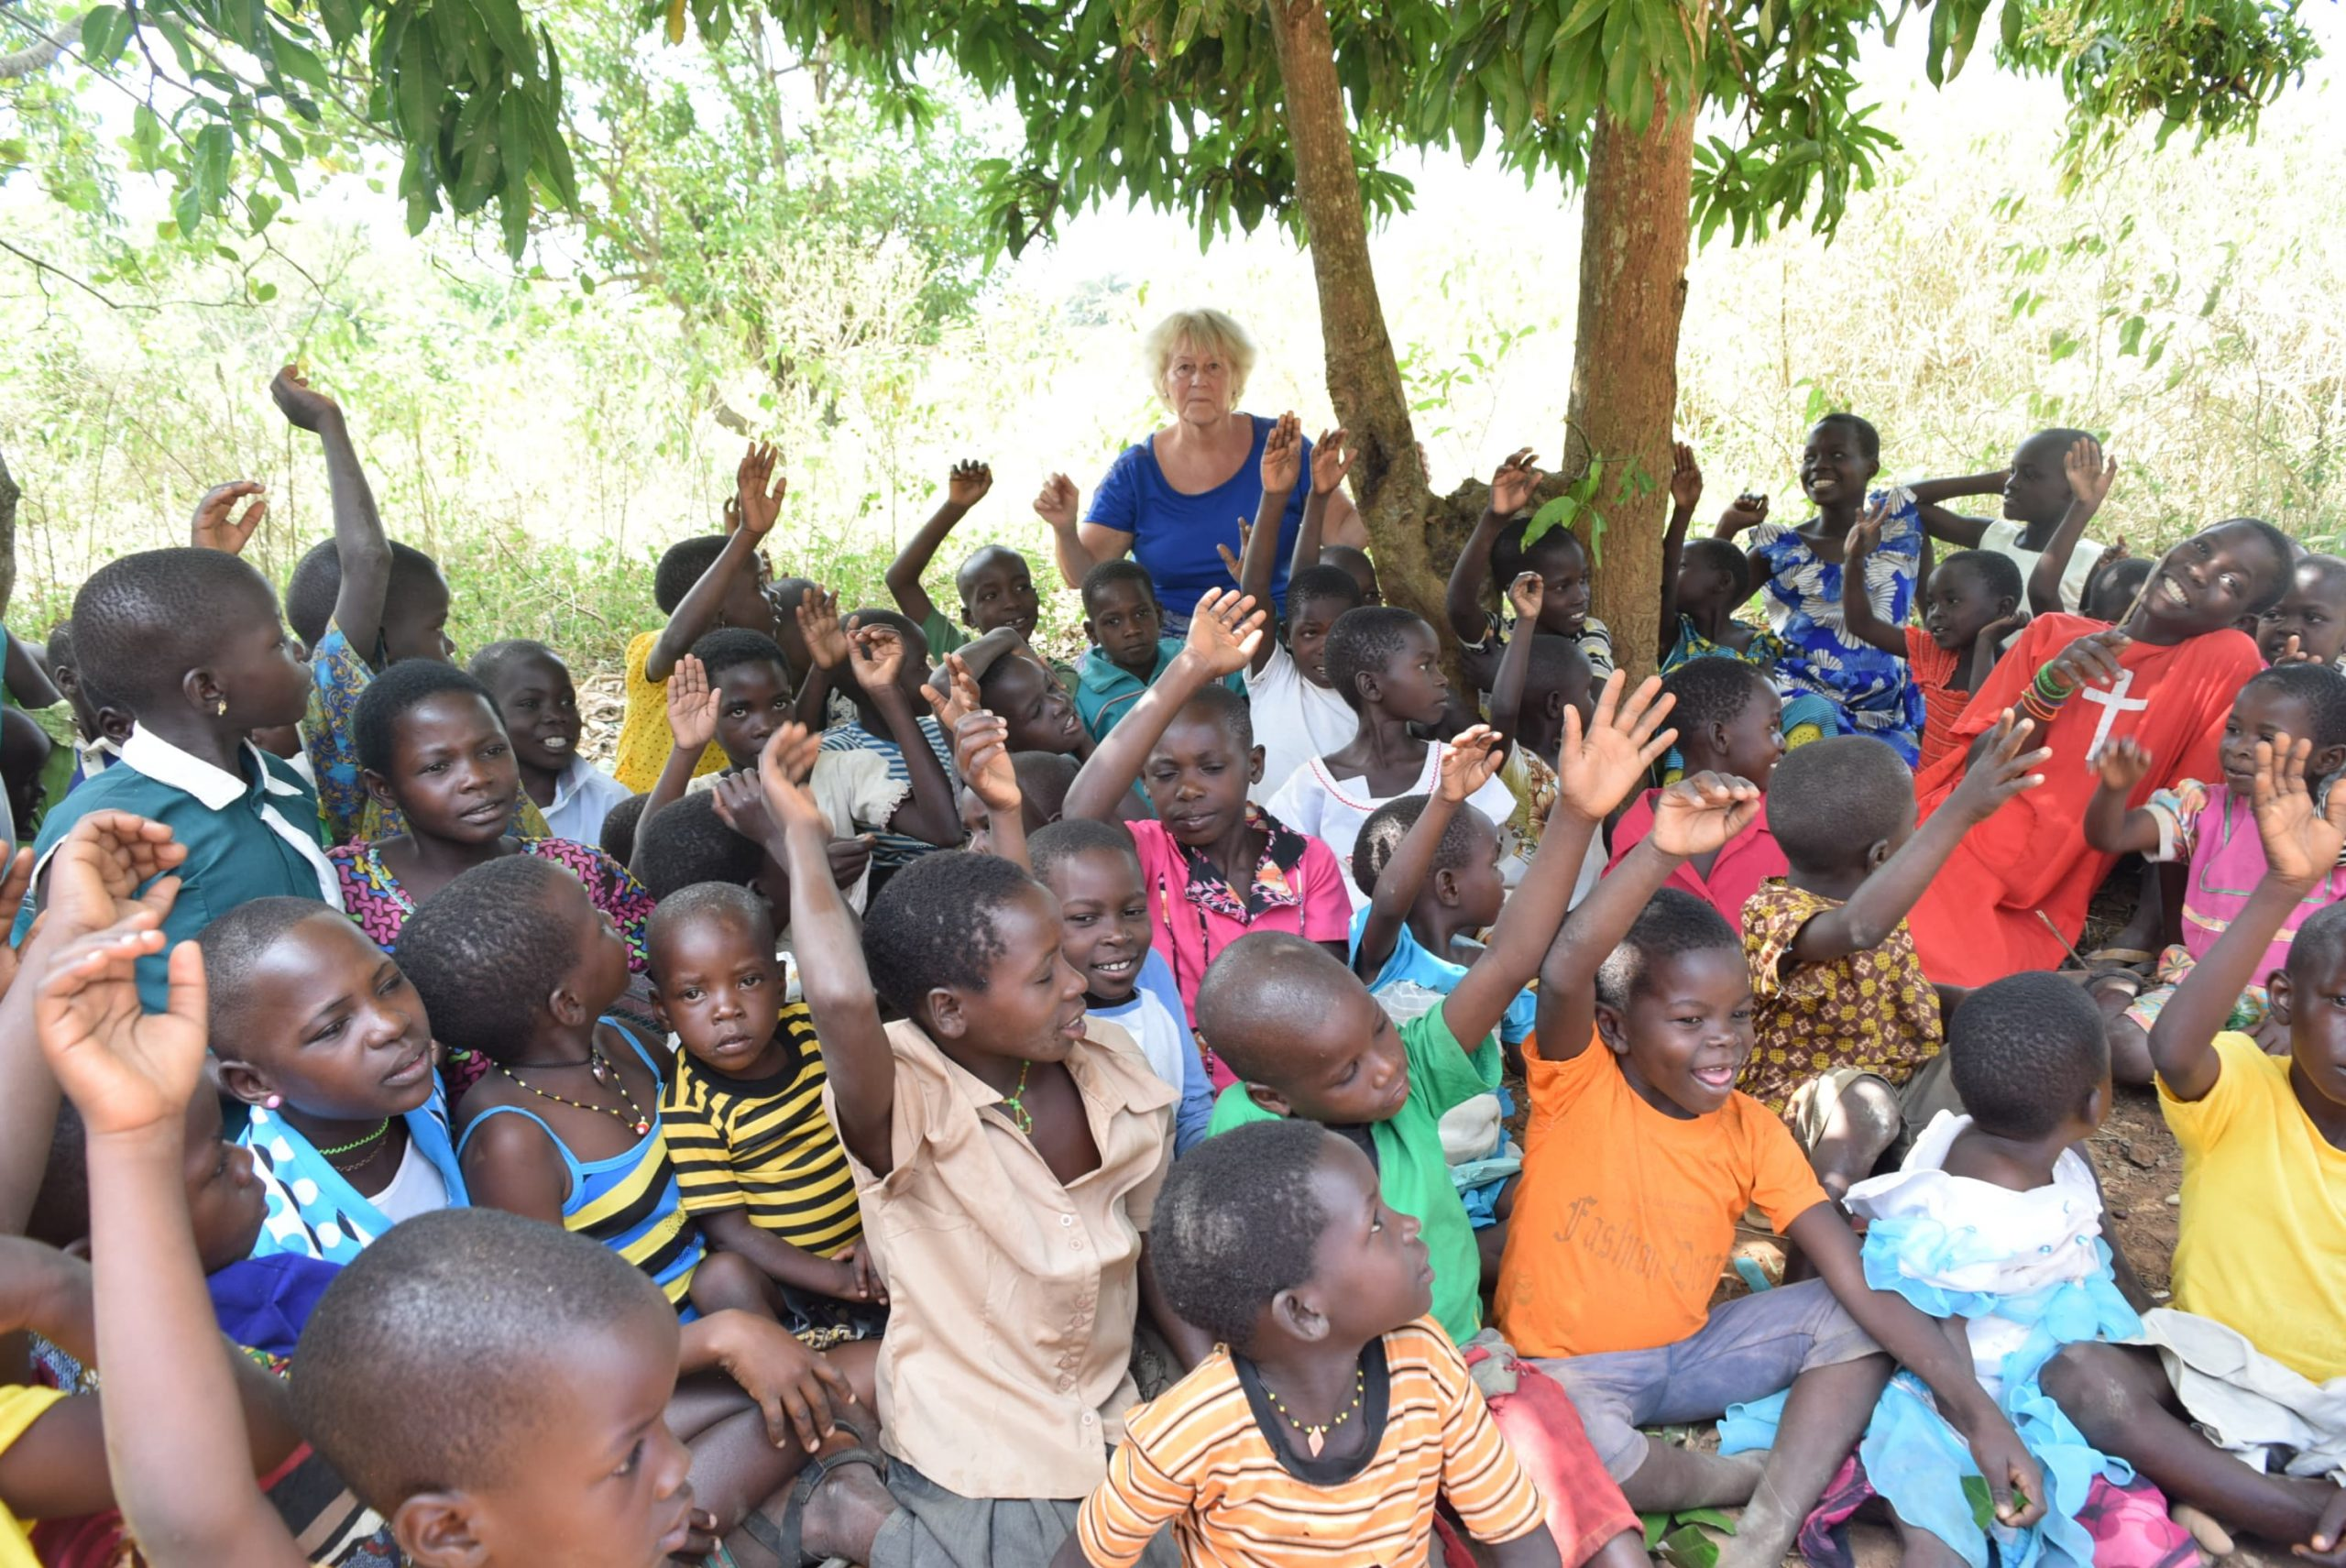 Bringing Dreams within Reach for Children